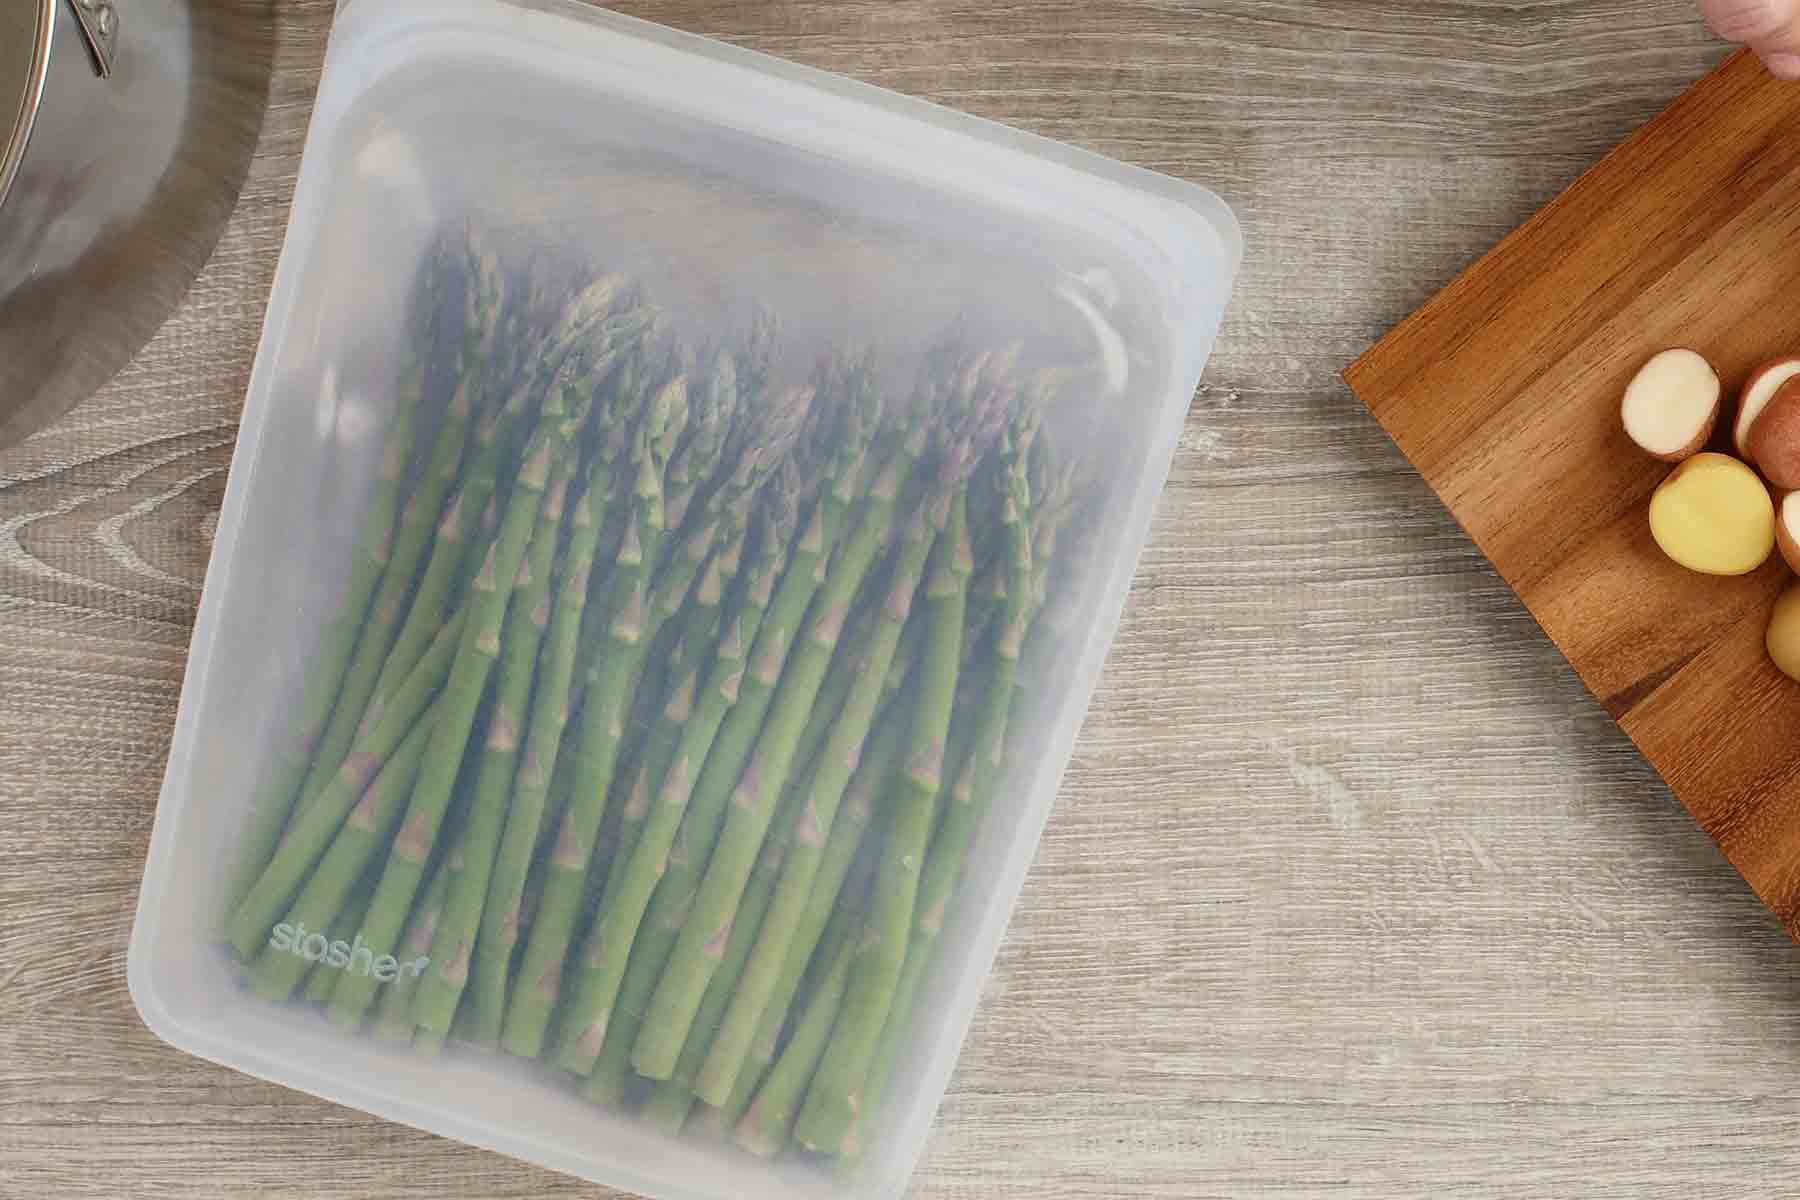 Eco-friendly gifts for Mother's Day from www.goingzerowaste.com #ecofriendly #zerowaste #mothersday #mothersdaygifts